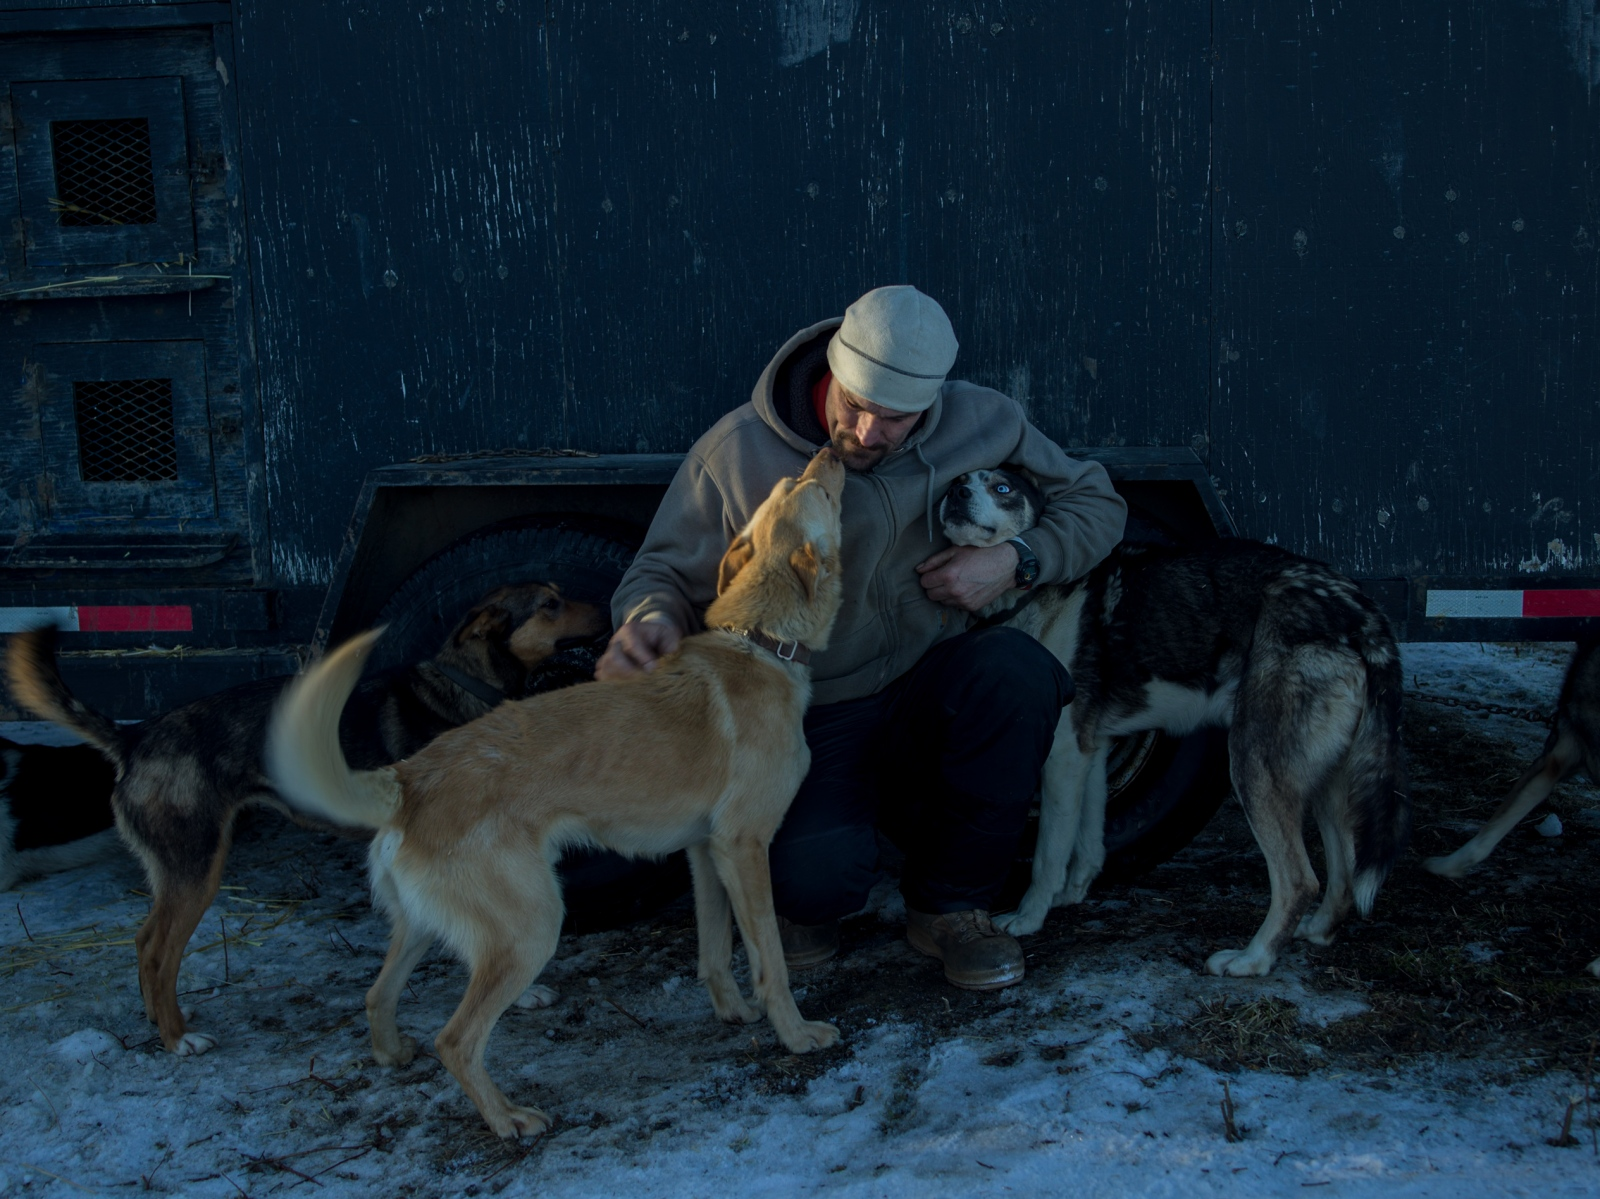 Sebastien Vergnaud with his dogs at the 2016 Iditarod restart in Willow Alaska on March 6, 2016. Vergnaud, originally from France, is currently living in the Yukon, and although he says his dogs, most of whom are about one year old, are too young to race this year, he is hoping to race the Iditarod next year.